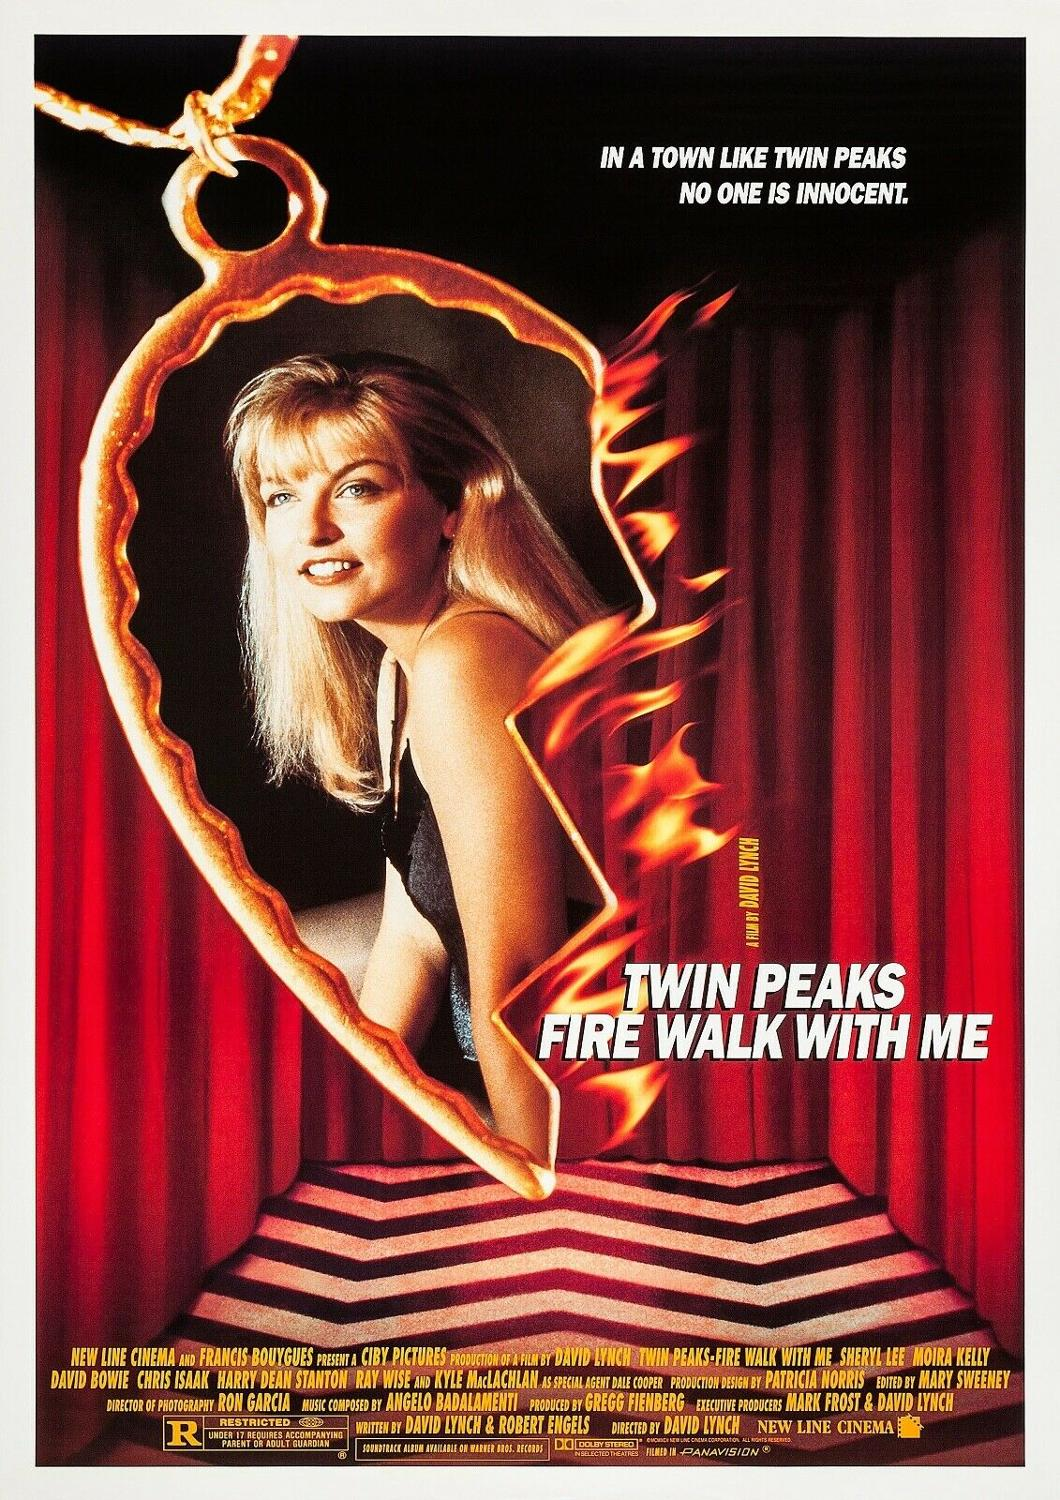 N1891 Tw Peaks Fire Walk With Me David Lynch Movie Cinema Restored Wall Sticker Silk Fabric Poster Art Indoor Decor Bright image